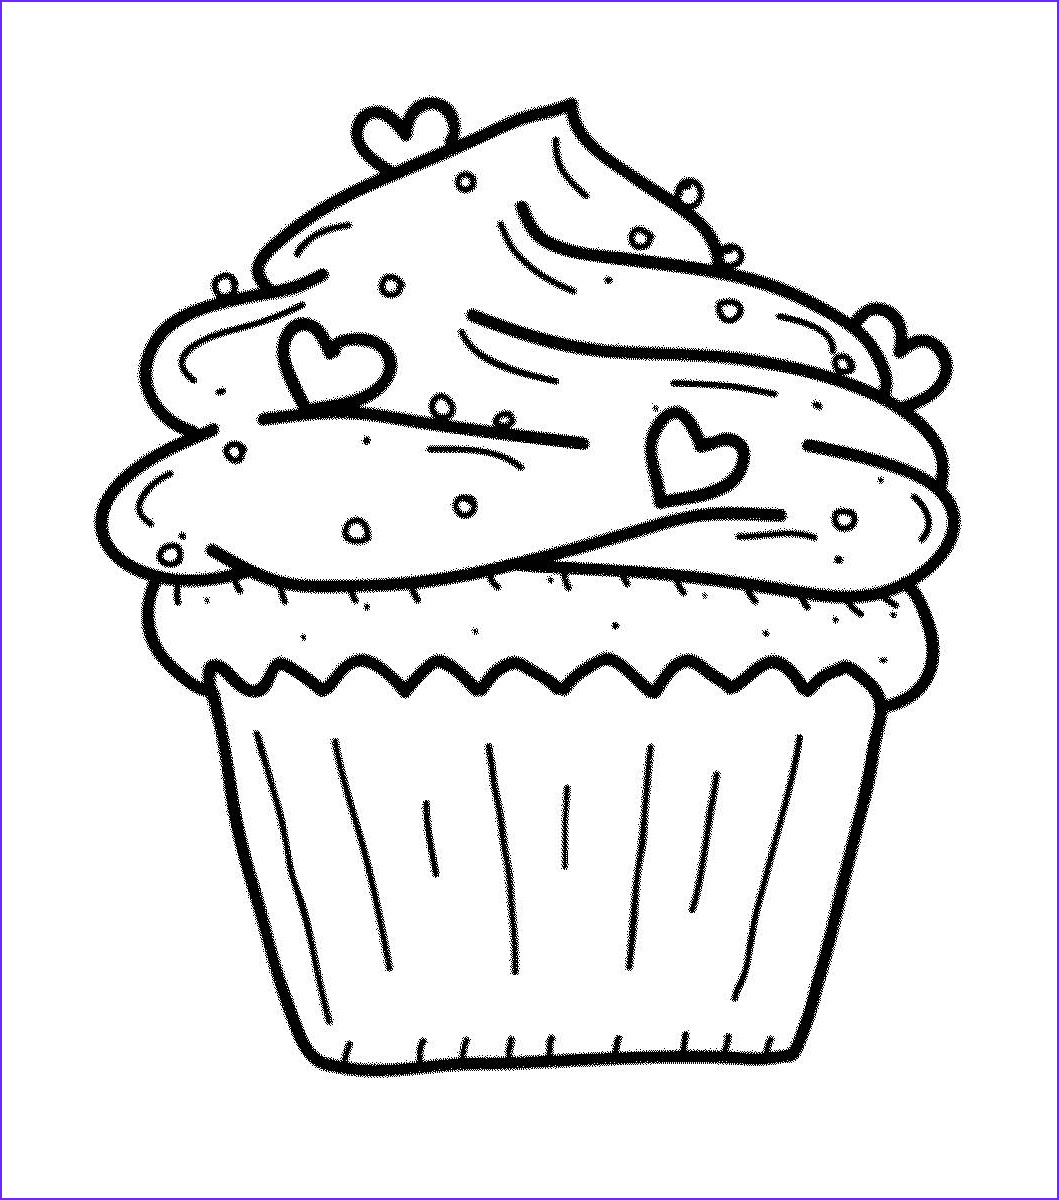 Sweets Coloring Pages Cool Photos Sweets Coloring Pages for Childrens Printable for Free